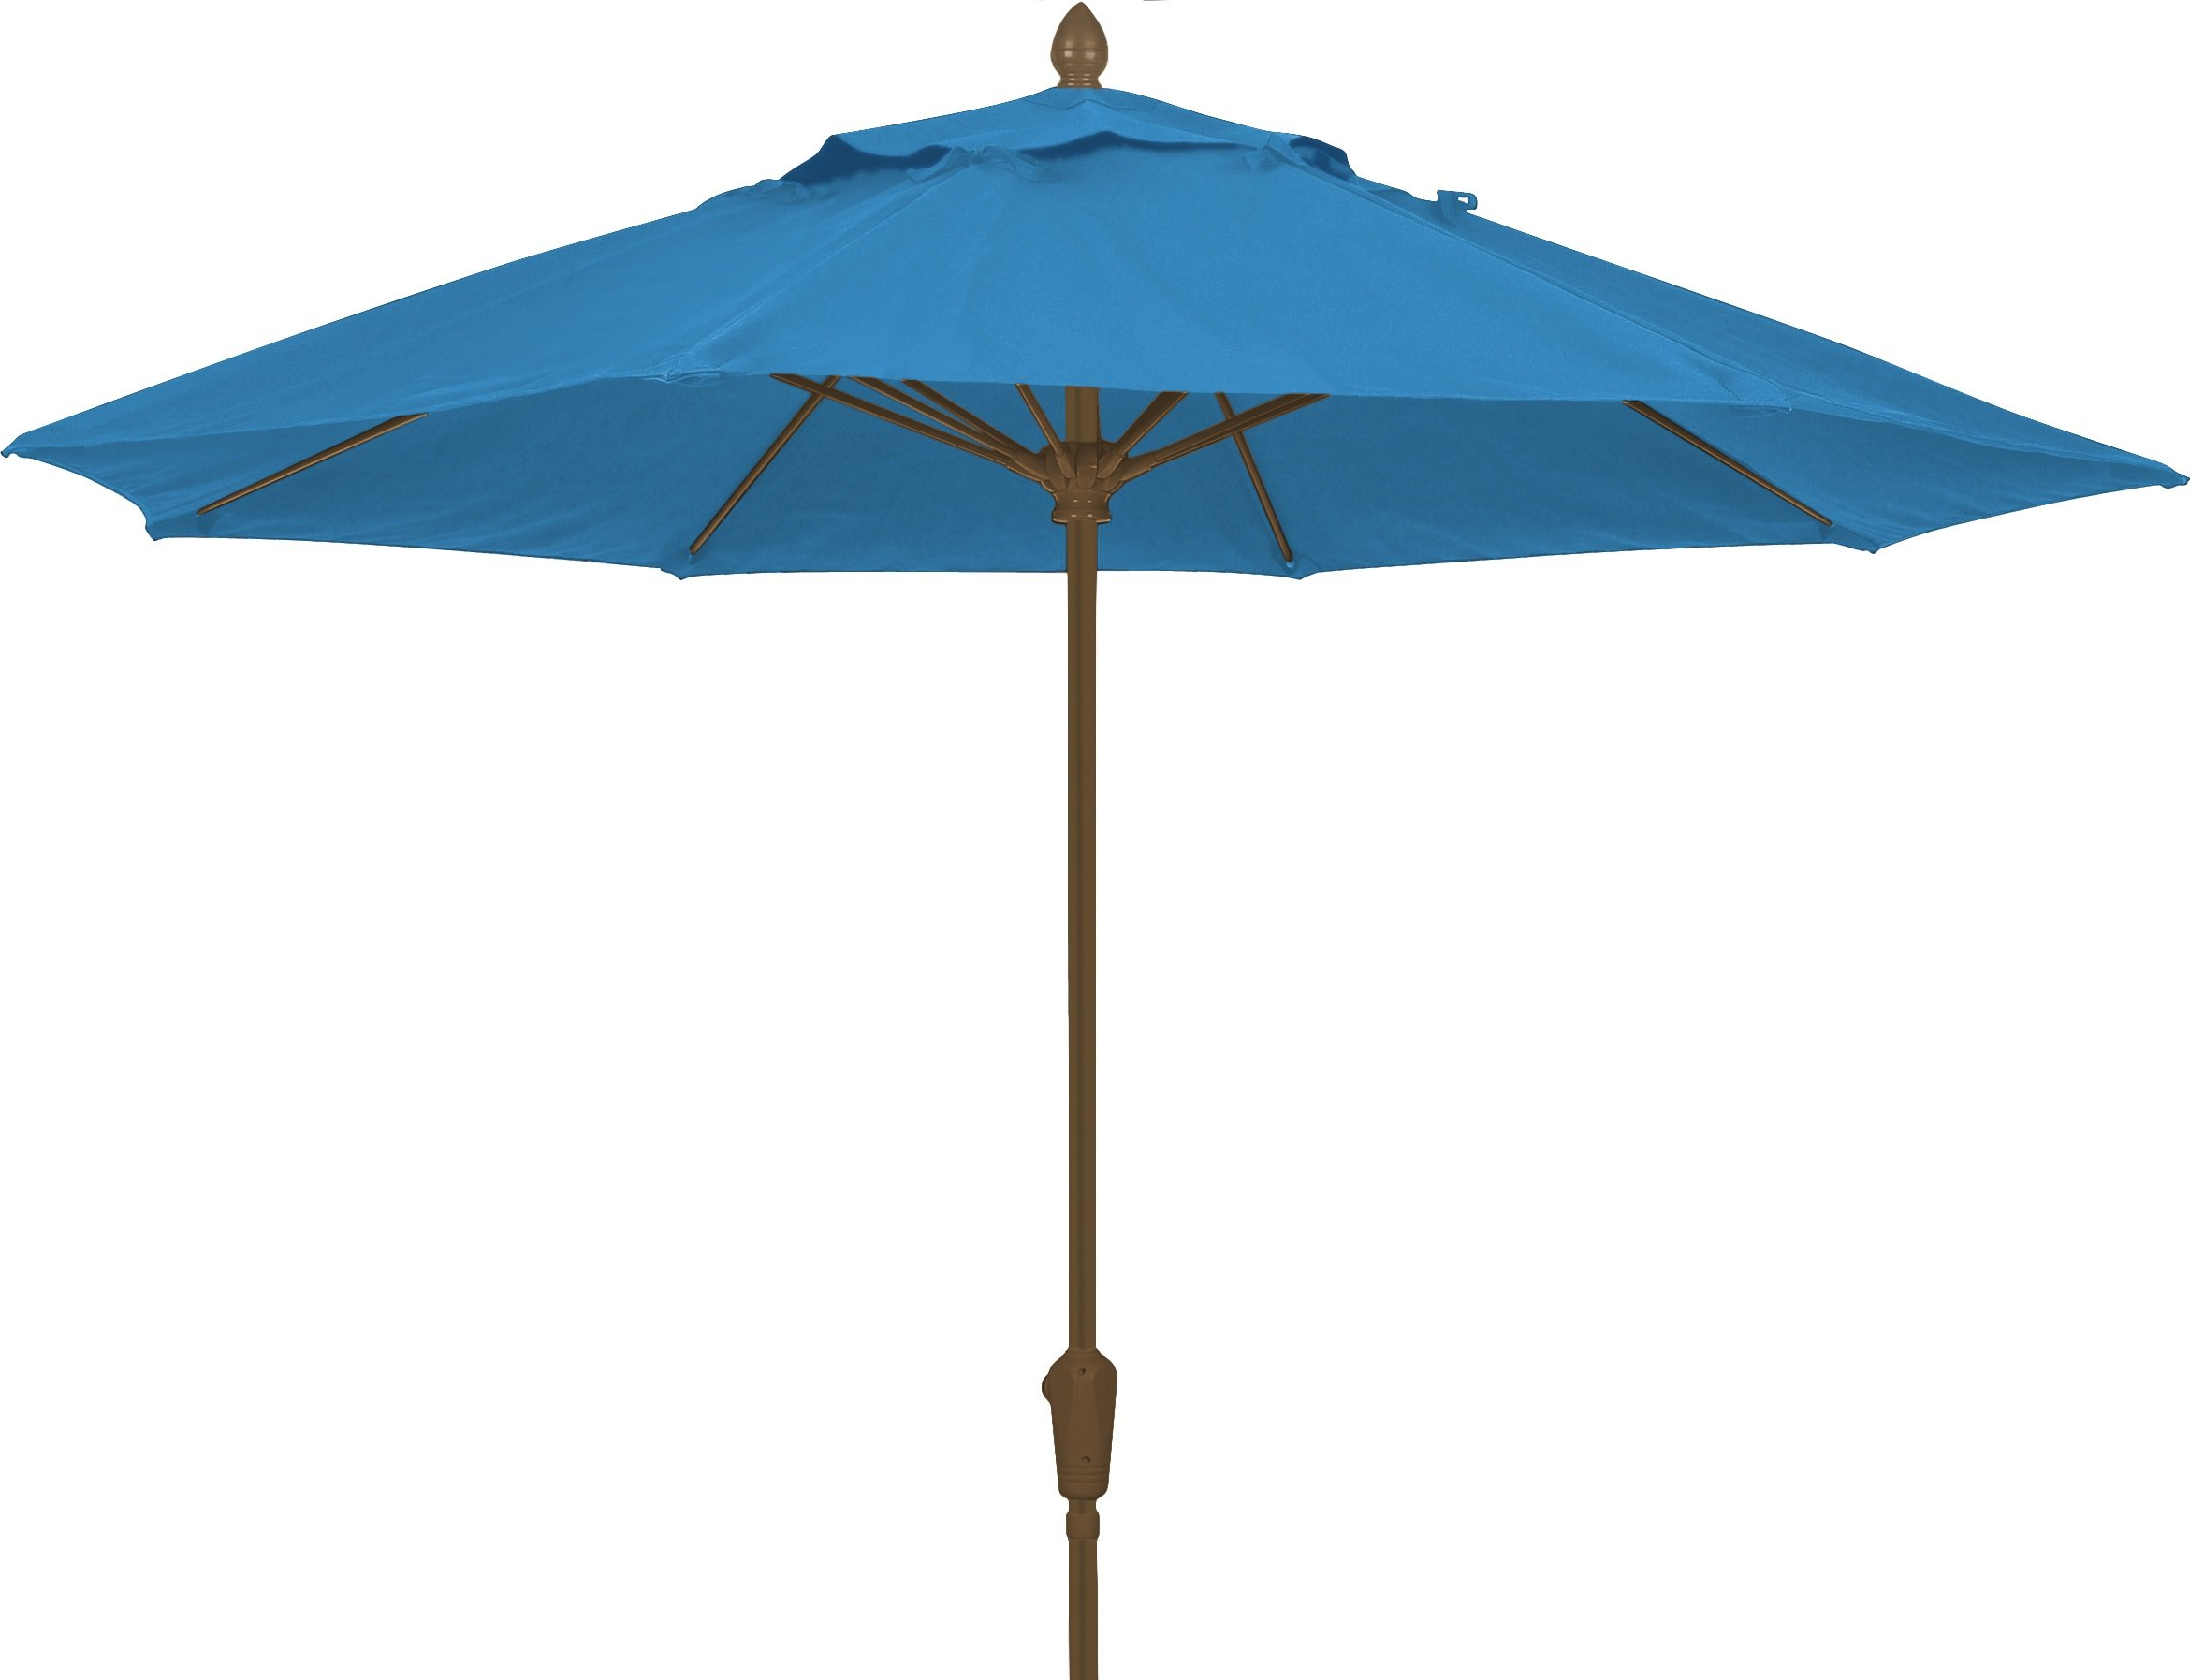 Prestige 9' Market Sunbrella Umbrella Intended For Best And Newest Mucci Madilyn Market Sunbrella Umbrellas (View 12 of 20)